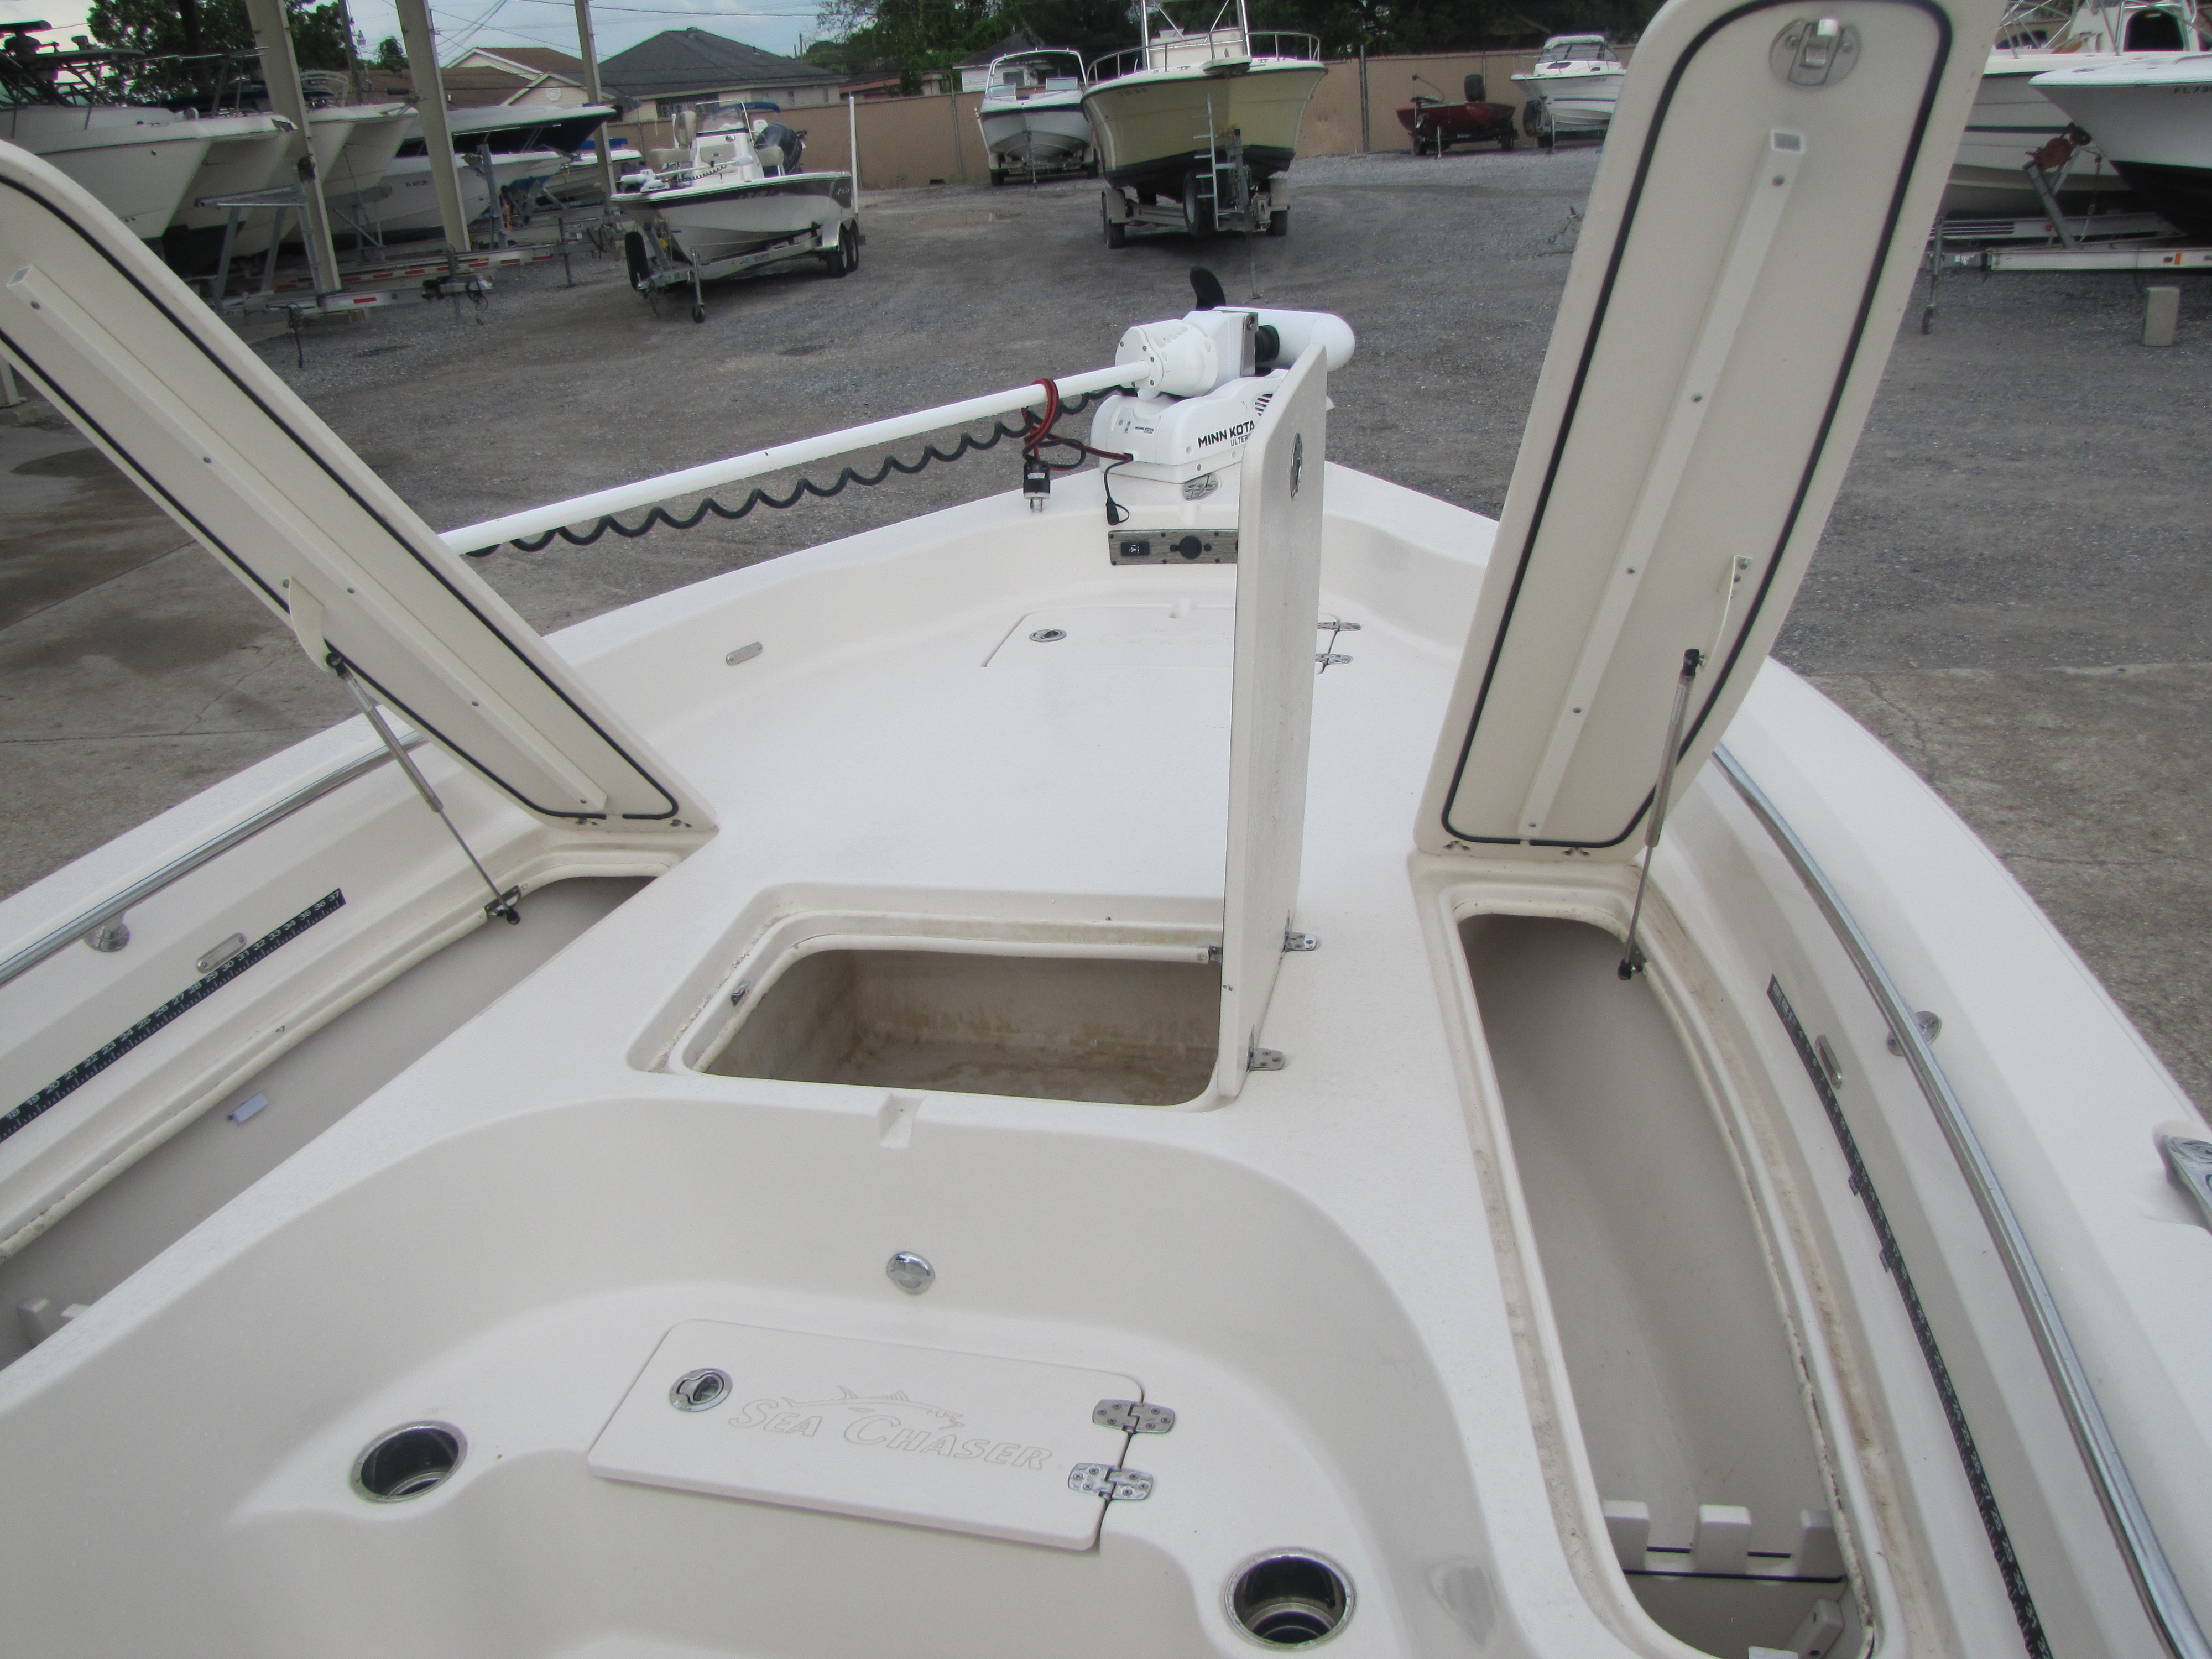 2018 Sea Chaser boat for sale, model of the boat is 23 LX & Image # 6 of 19